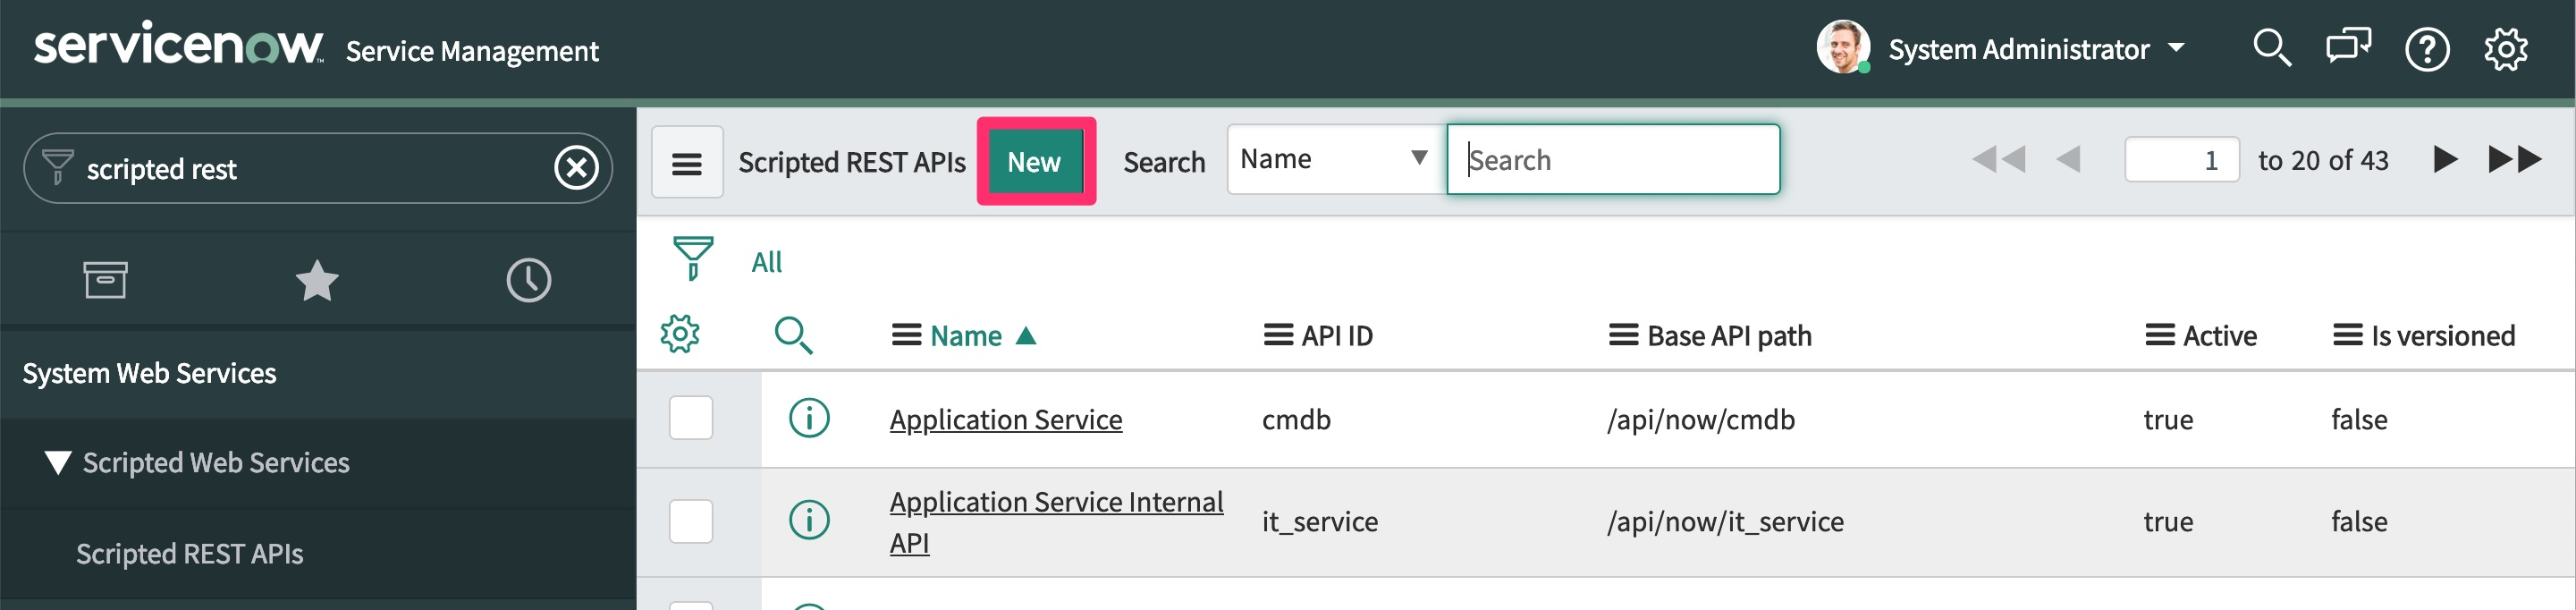 The SerivceNow Scripted REST APIs page, highlighting the New button at the top